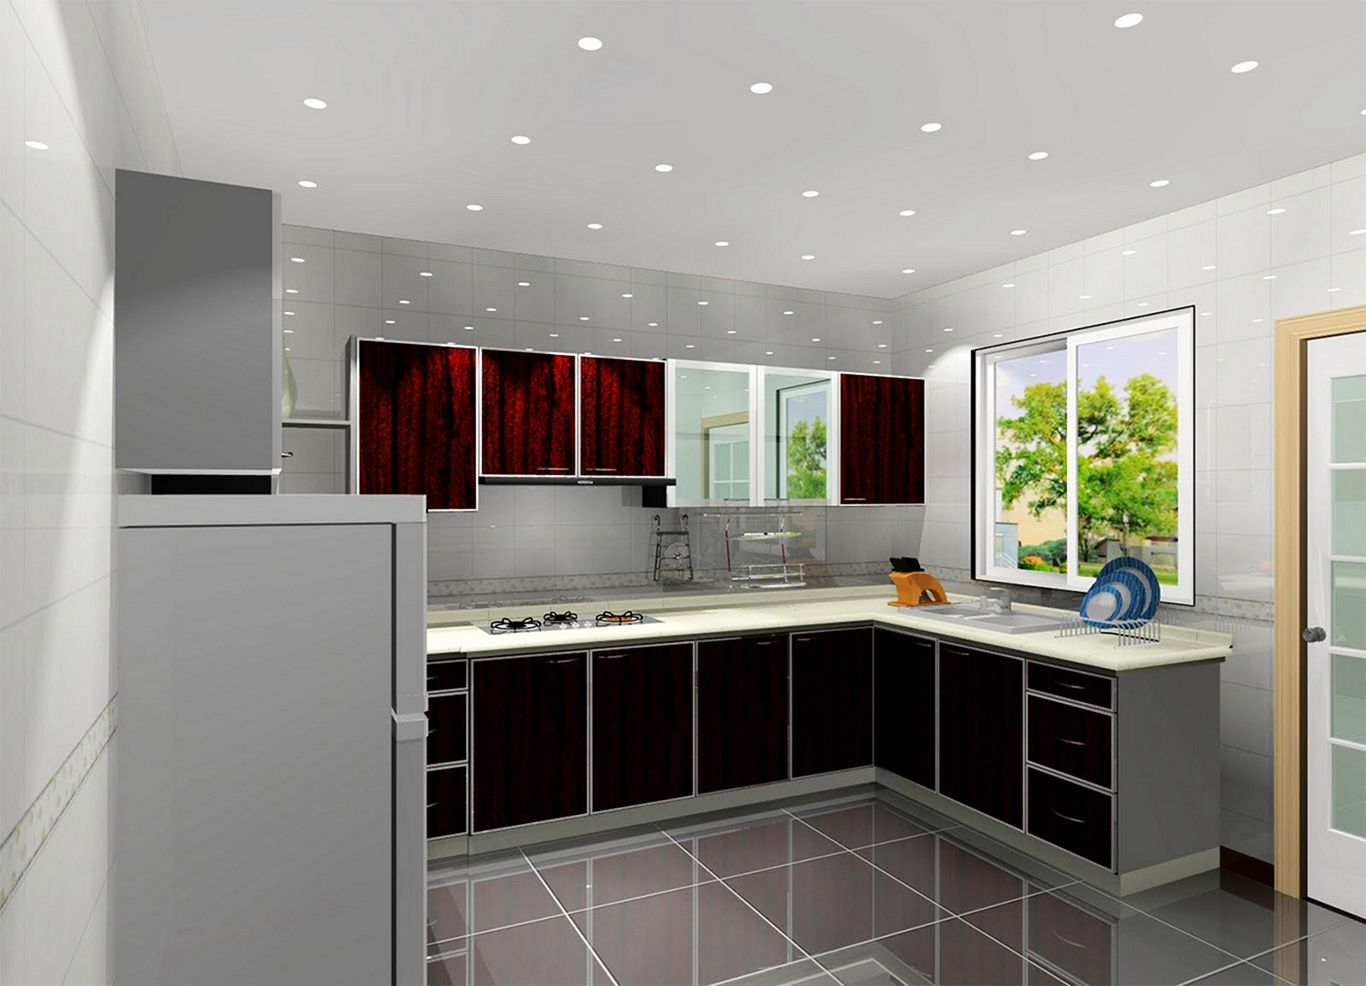 Outstanding 25 Minimalist L Shaped Kitchen Design For Small Kitchen Ideas Https Usdeco Kitchen Design Software Simple Kitchen Design Simple Kitchen Cabinets